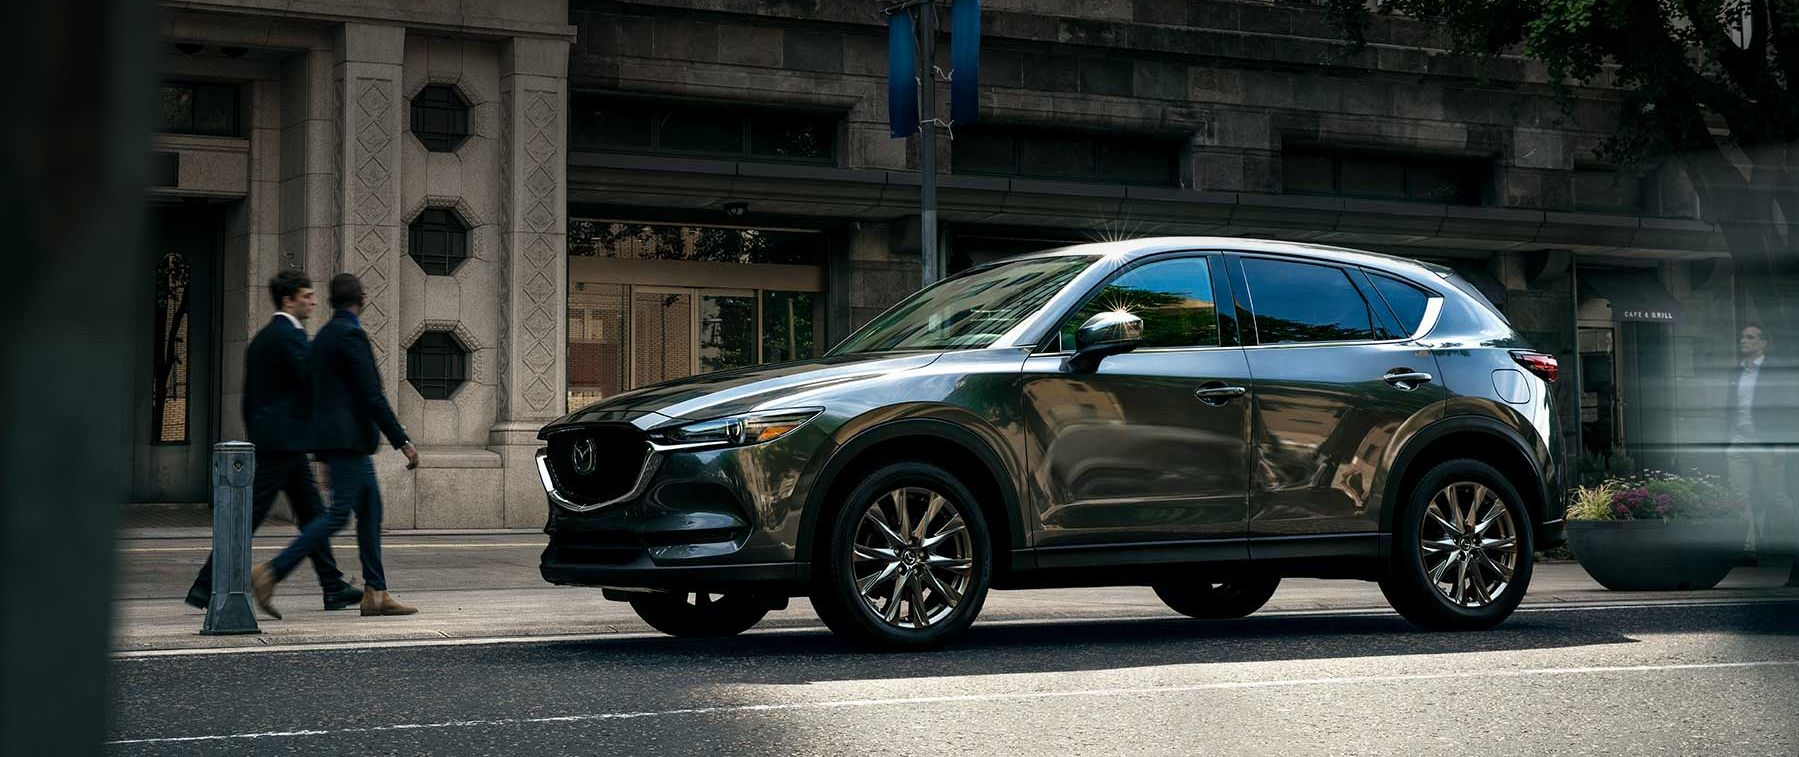 2019 Mazda CX-5 for Sale near Carmichael, CA